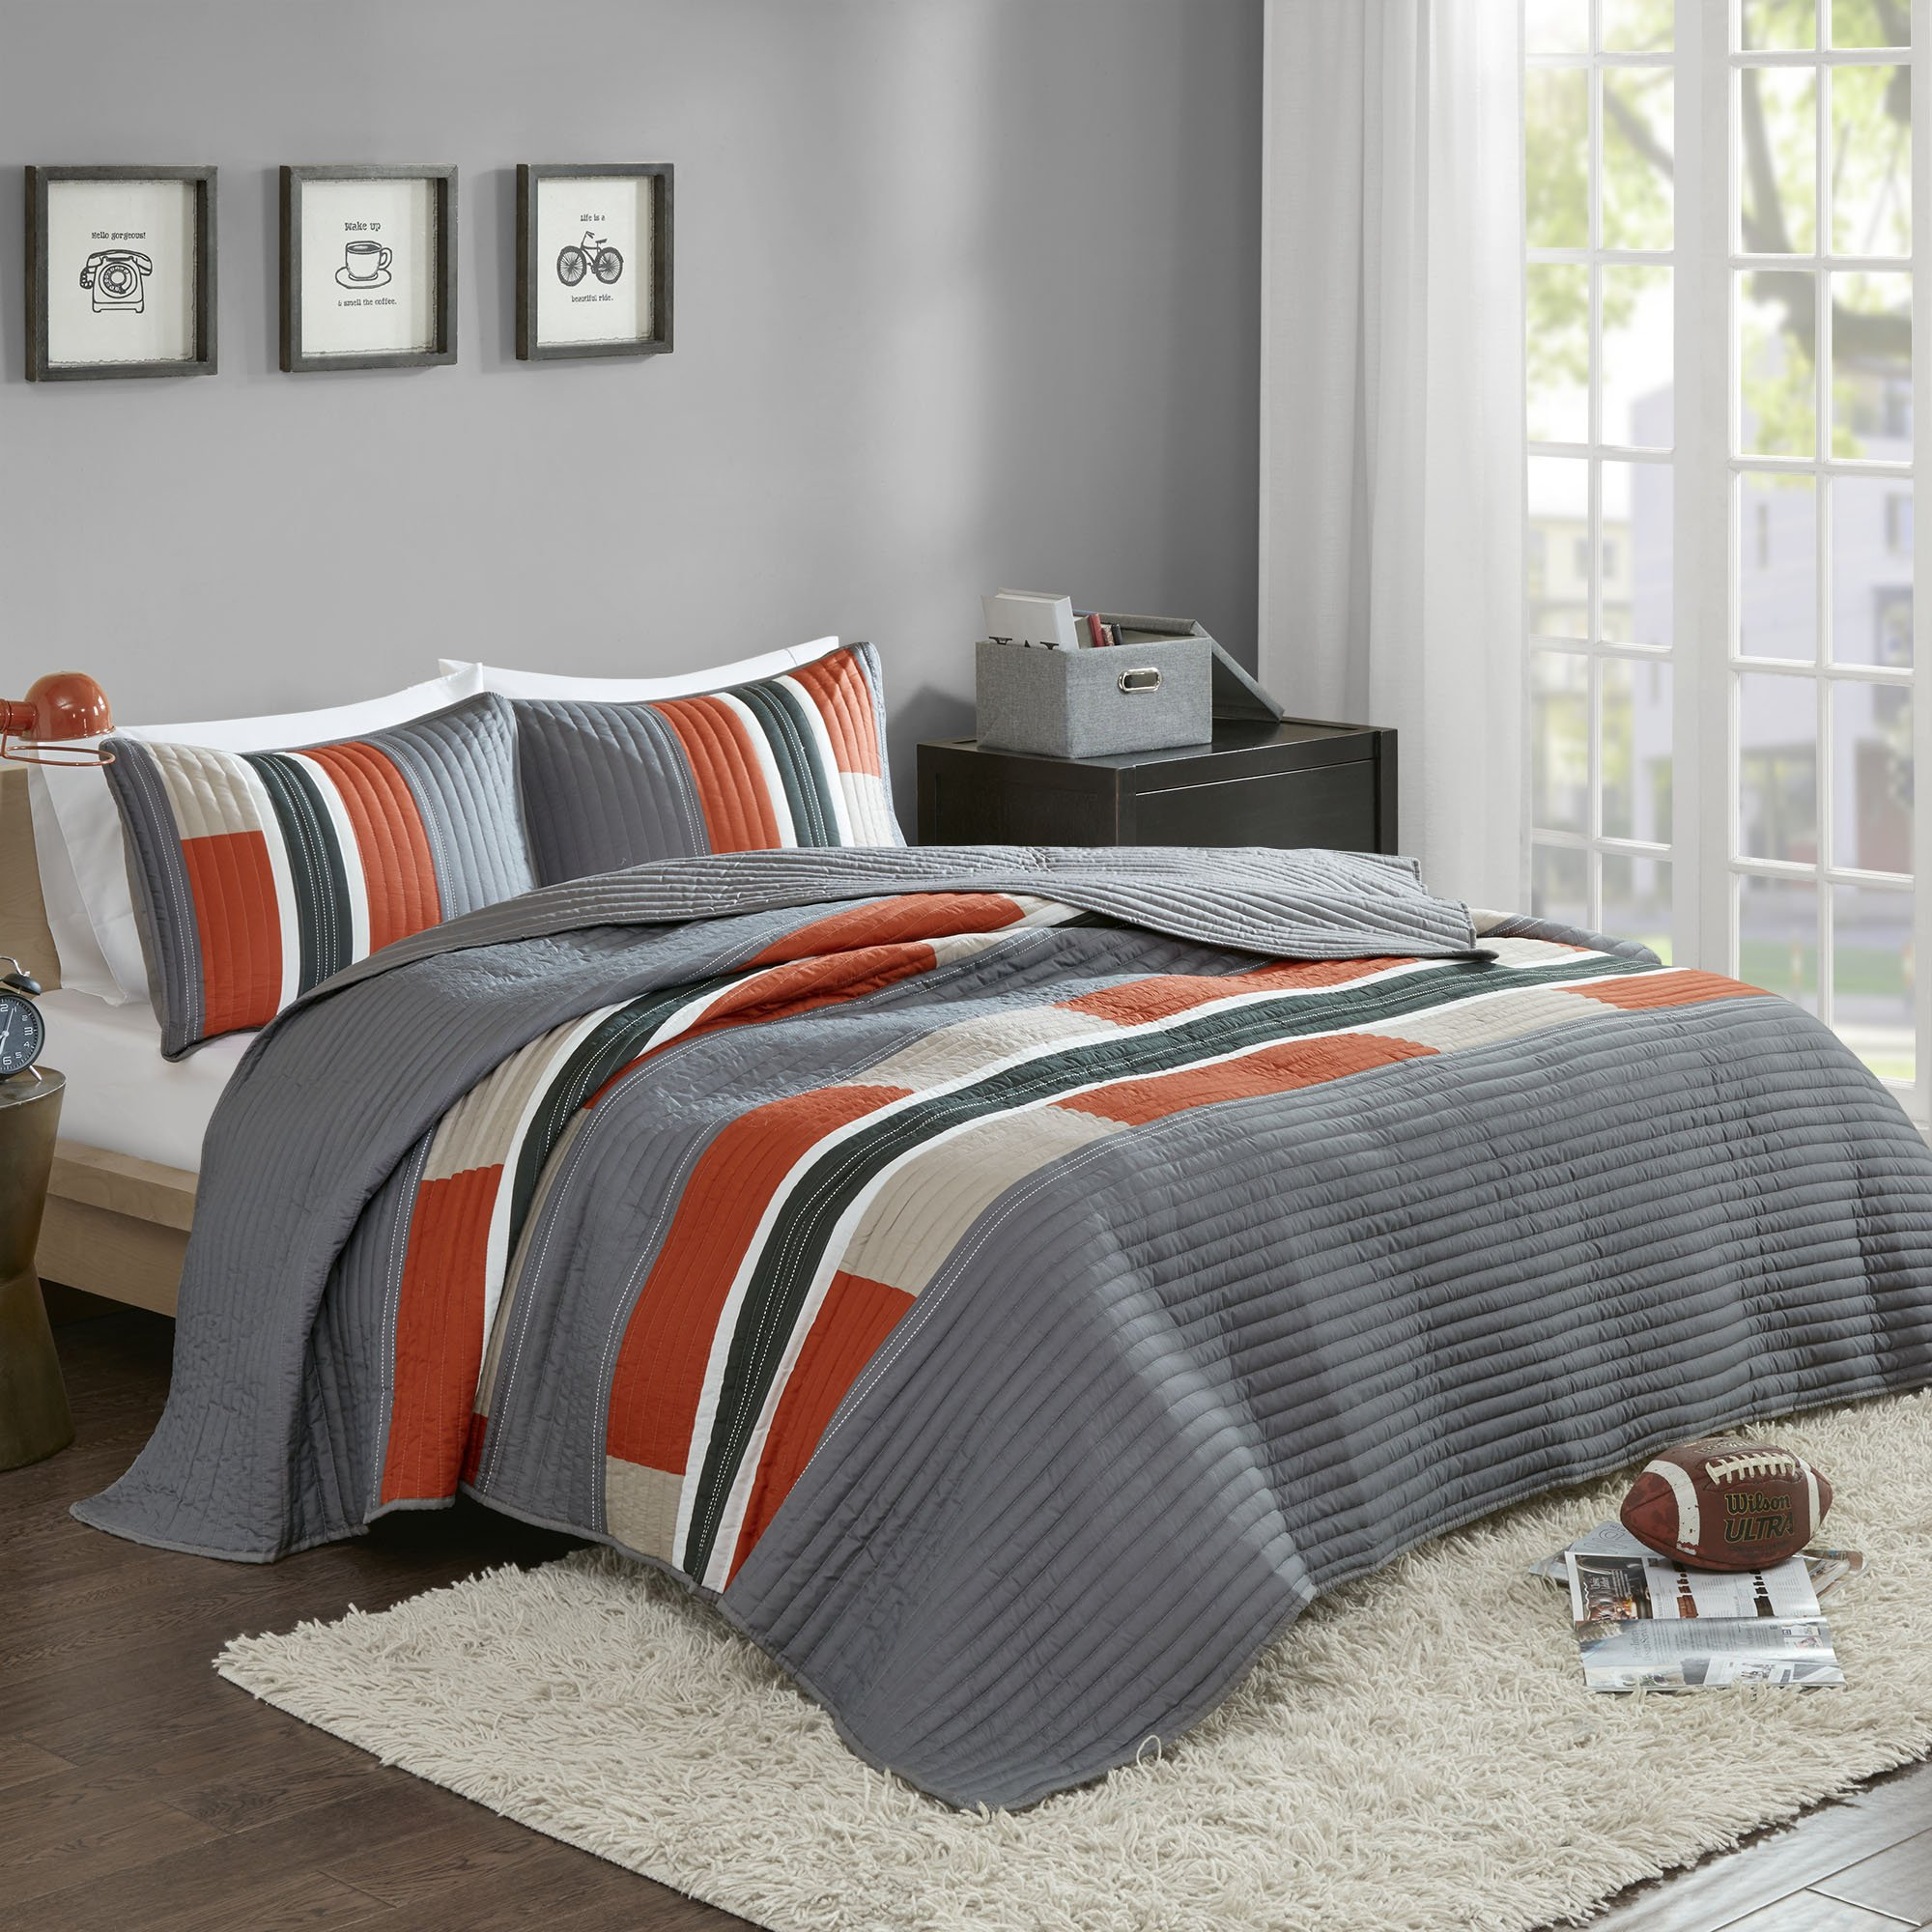 Bedspreads Twin XL Size Mini Quilt Set - Casual Pierre 2 Piece Kids Lightweight Filling Bedding Cover - Gray / Orange Patchwork Print - All Season Hypoallergenic - Fits Twin/Twin XL - Comfort Spaces